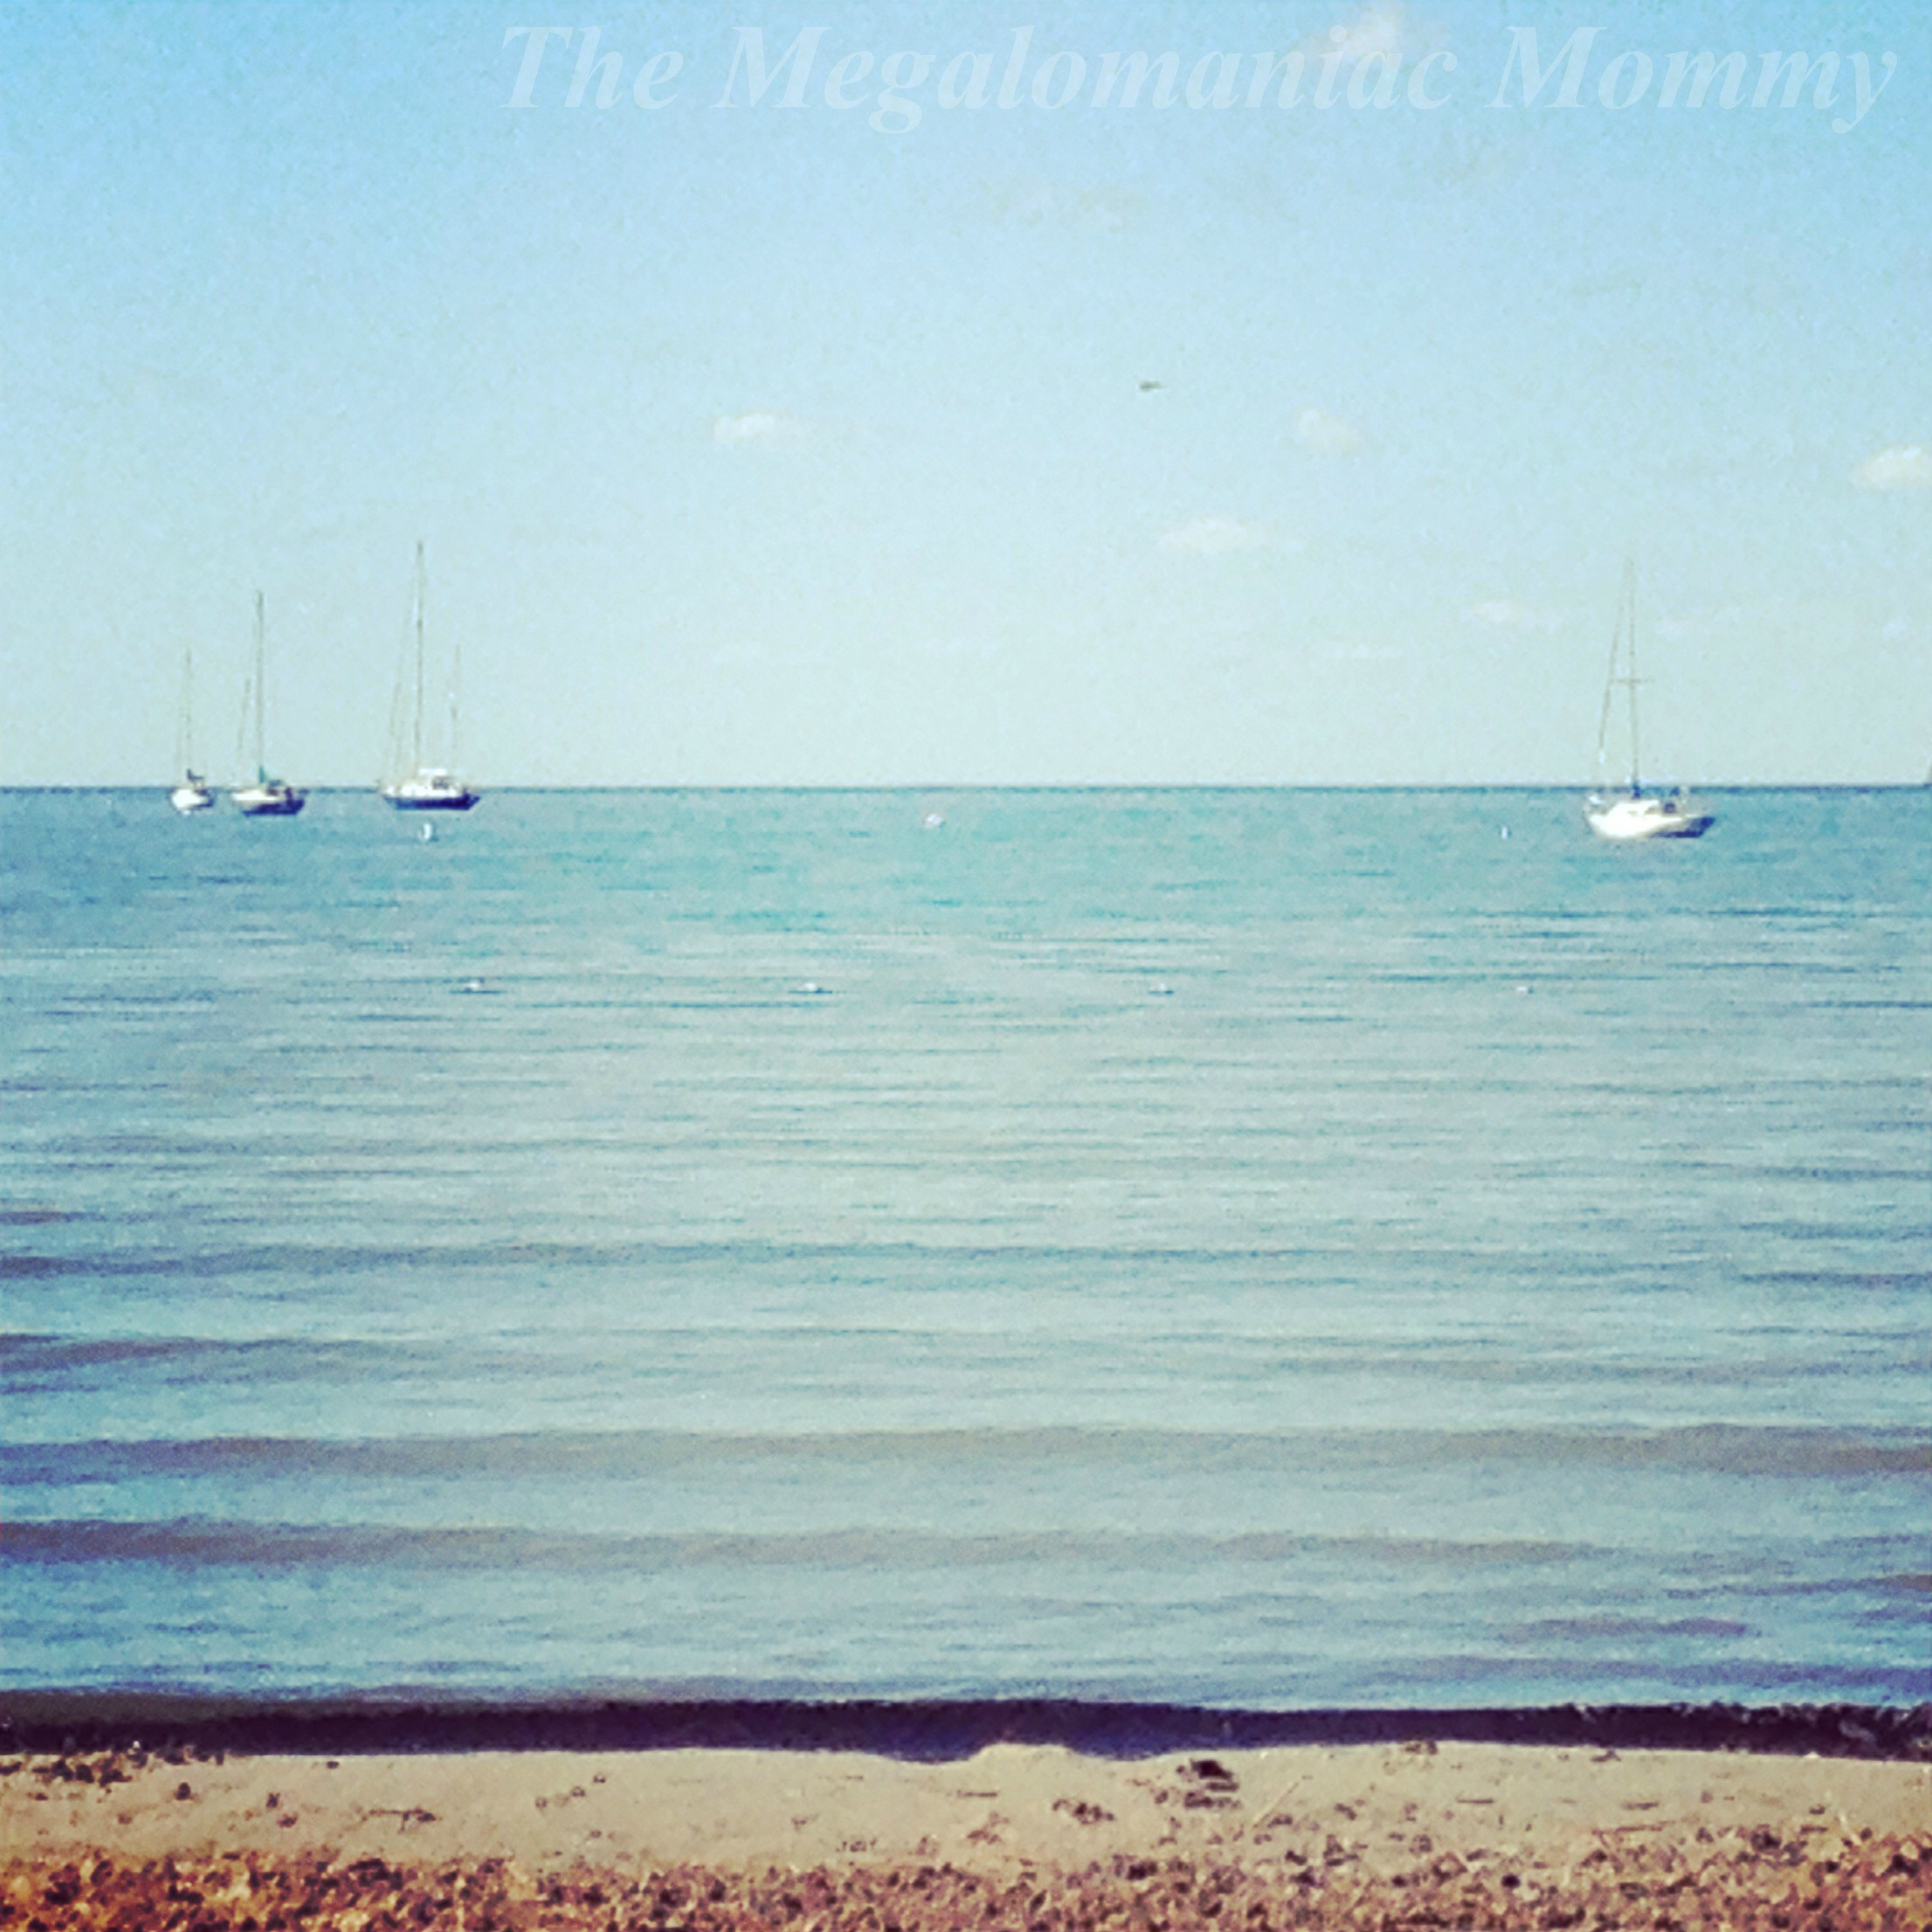 The view from the Ephraim Public Beach #Ephraim #DoorCounty #DiscoverWisconsin #Travel #ExploreYourState